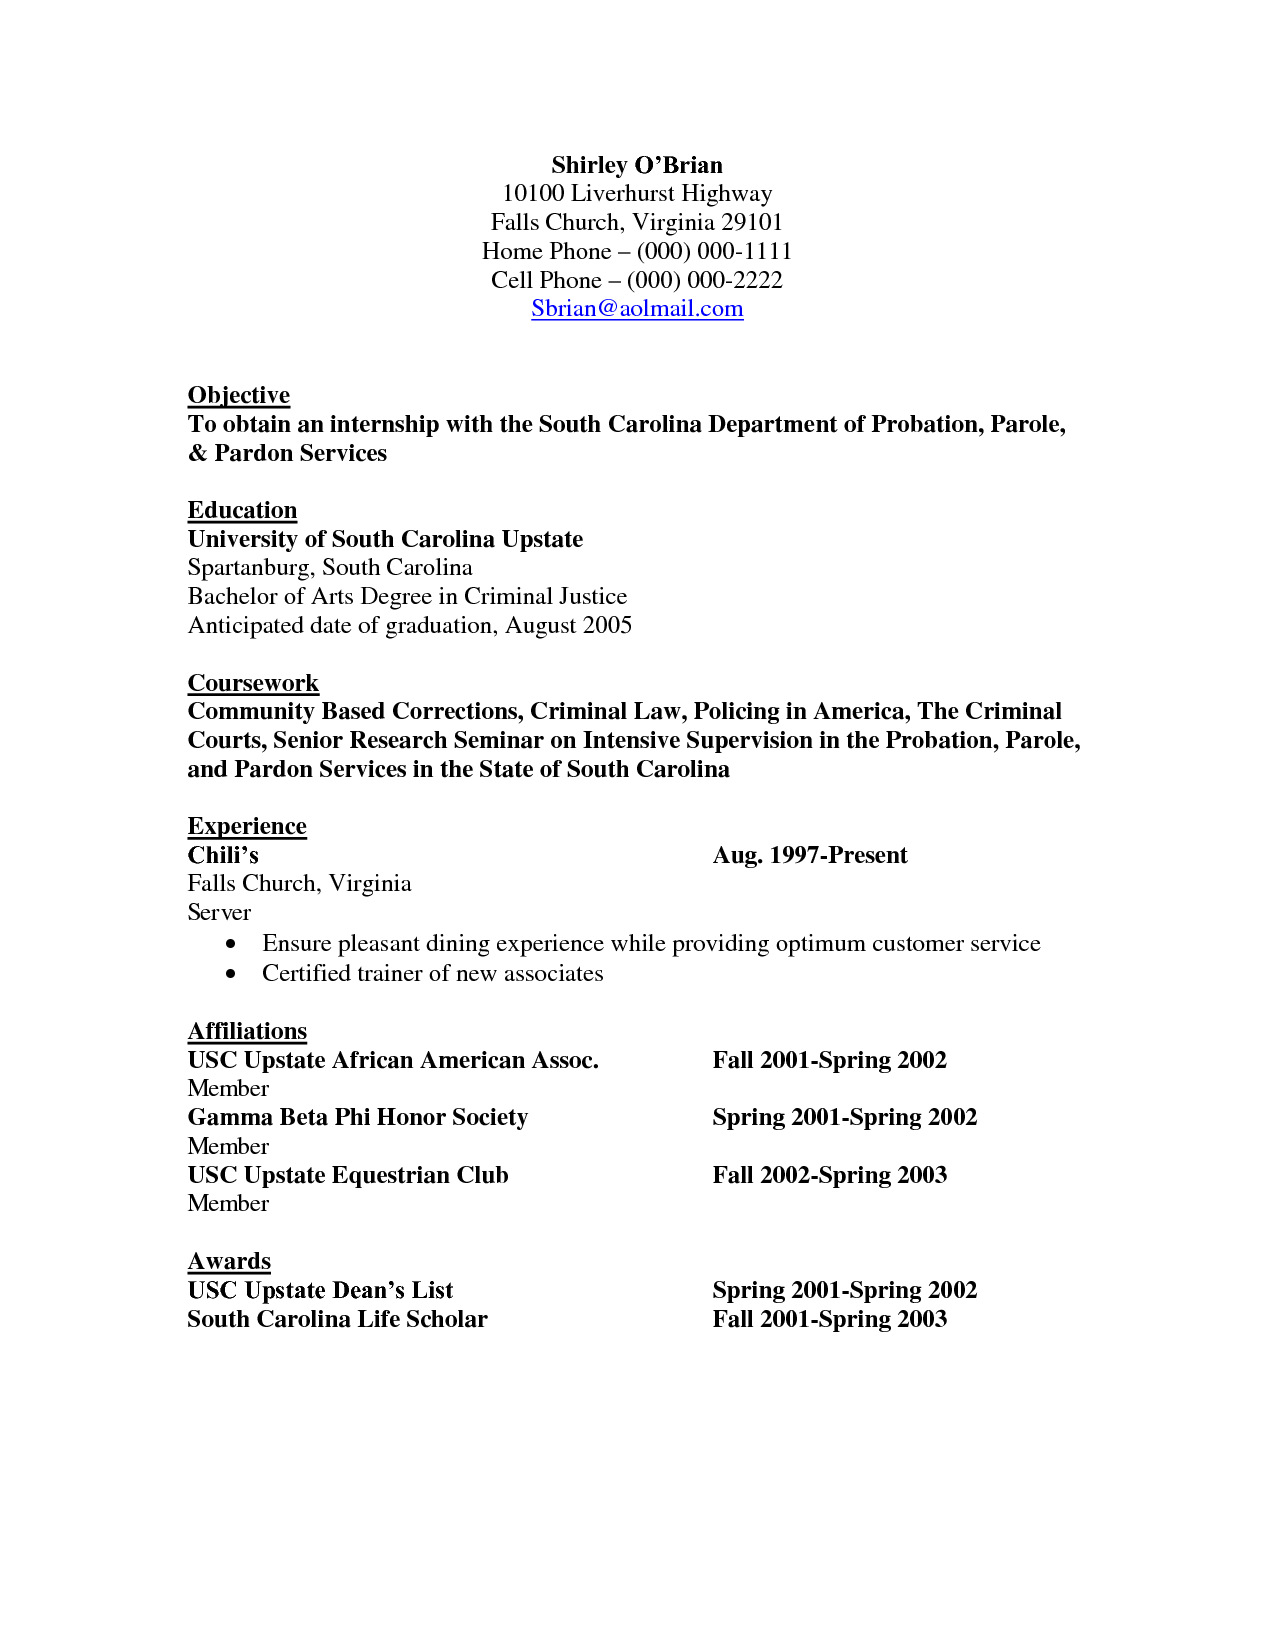 Resume Templates Tamu New Objective Resume Criminal Justice  Httpwwwresumecareer